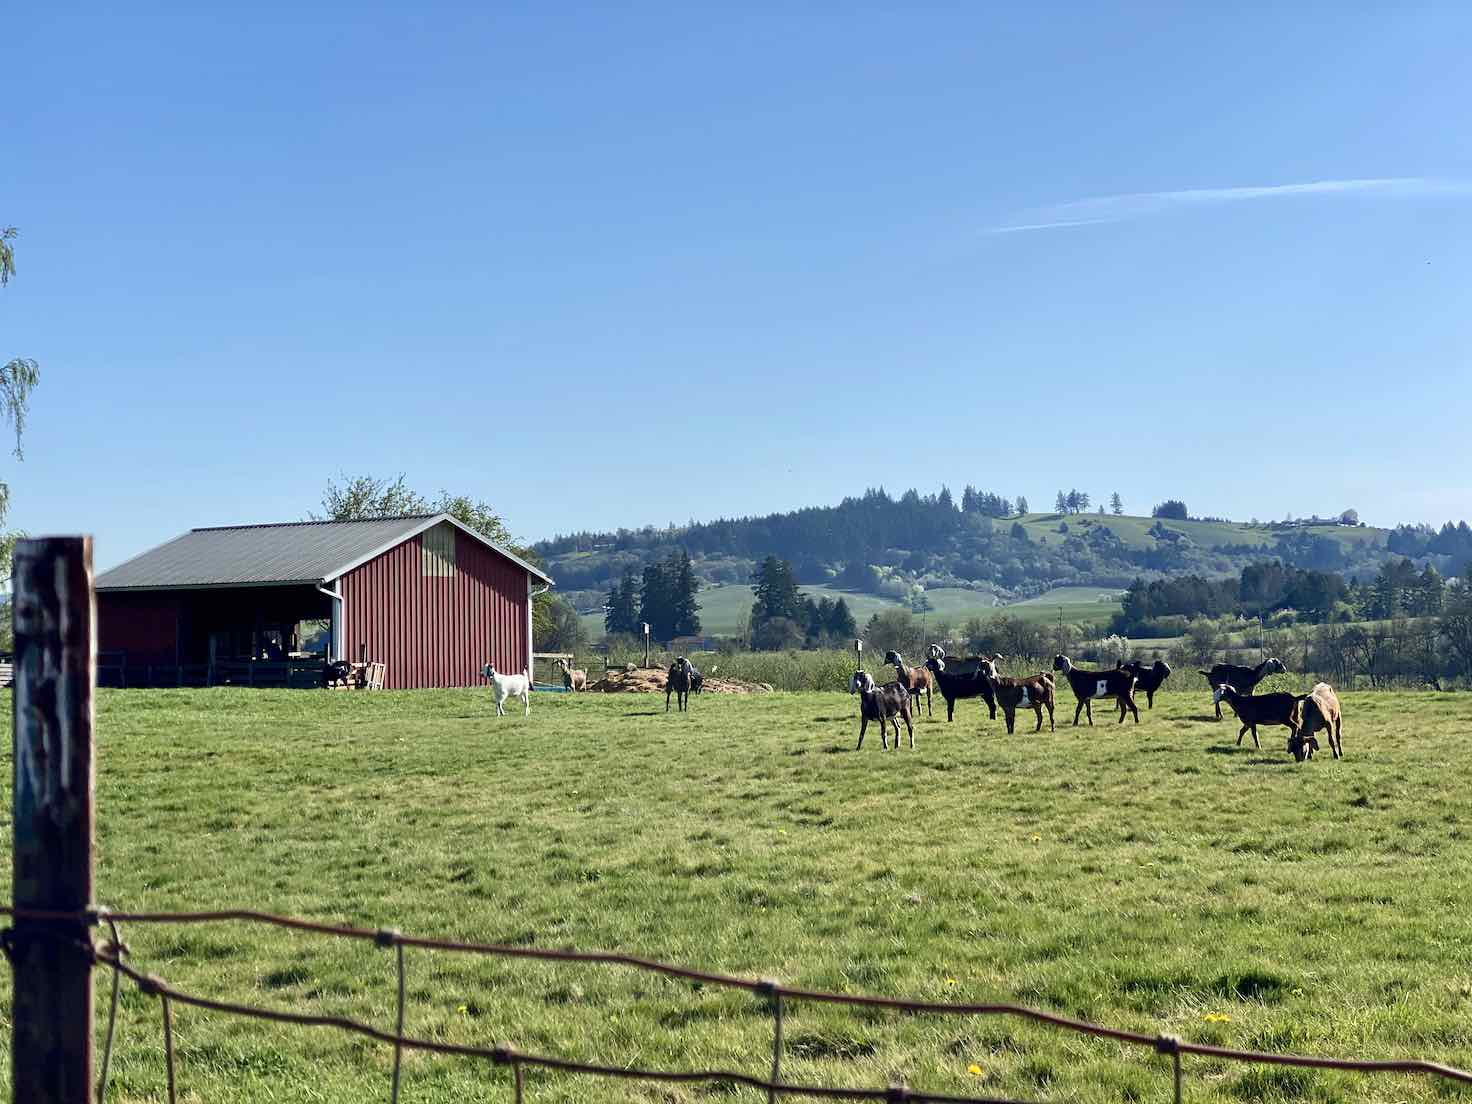 Red barn with goats in the north Willamette Valley of Oregon.